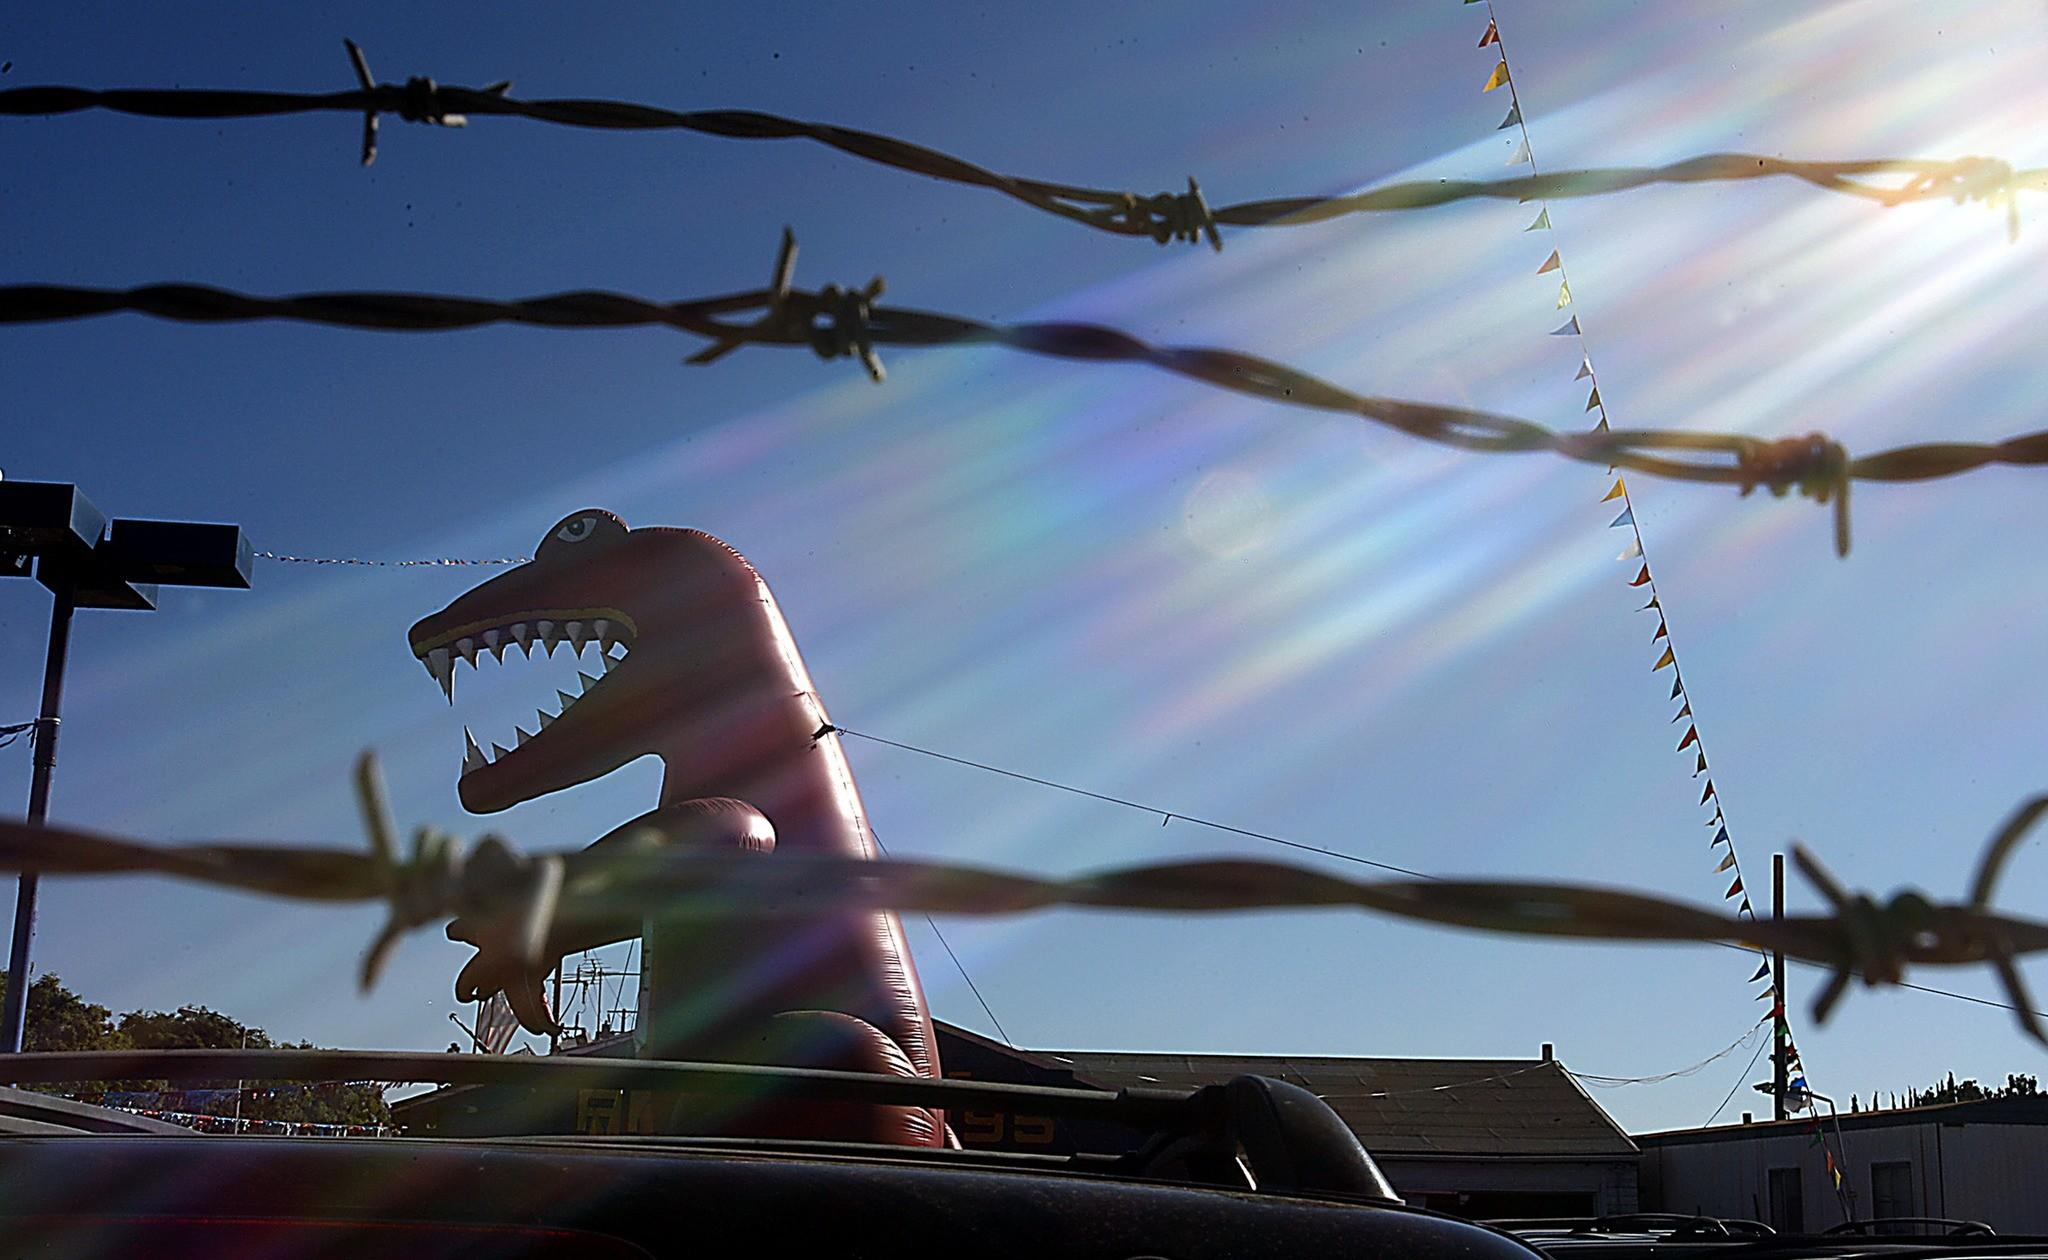 An inflatable dinosaur towers over one of the many used car lots along Harbor Boulevard in Santa Ana.